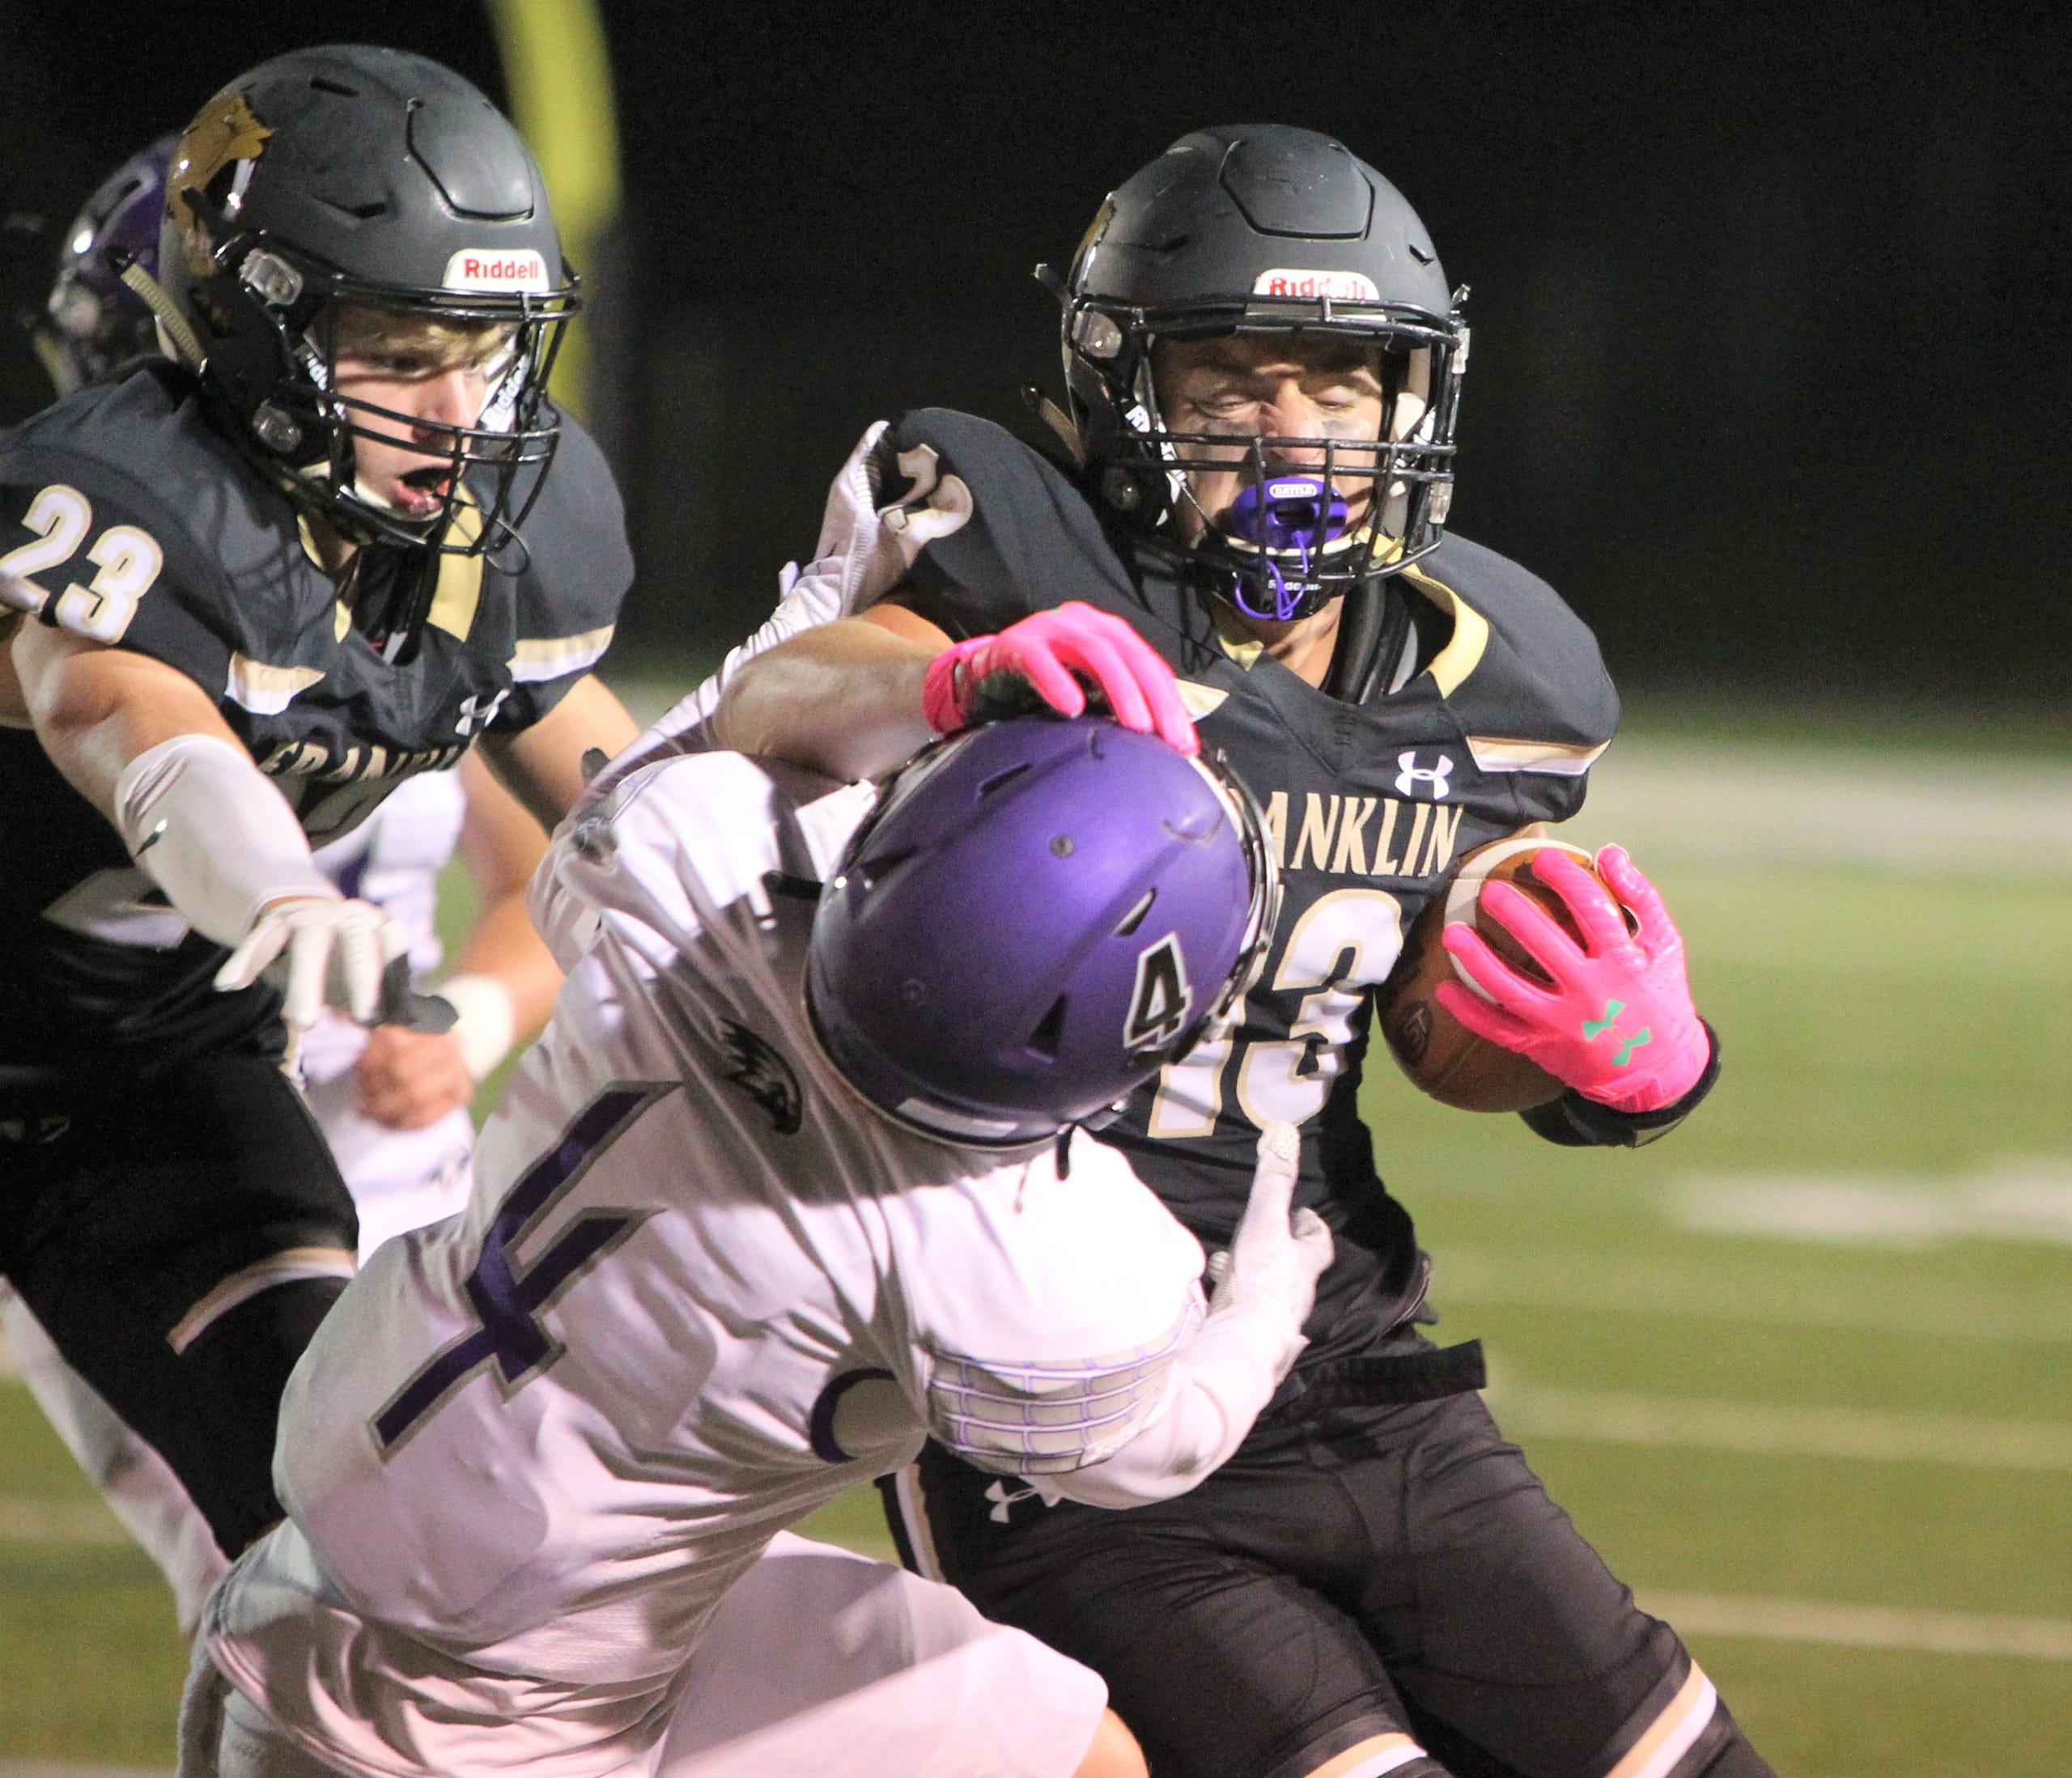 Franklin's Marko Rajkovic stiff-arms Kenosha Indian Trail's Connor Koch during Franklin's 28-6 victory on Friday, Oct. 2, 2020, at Franklin High School.